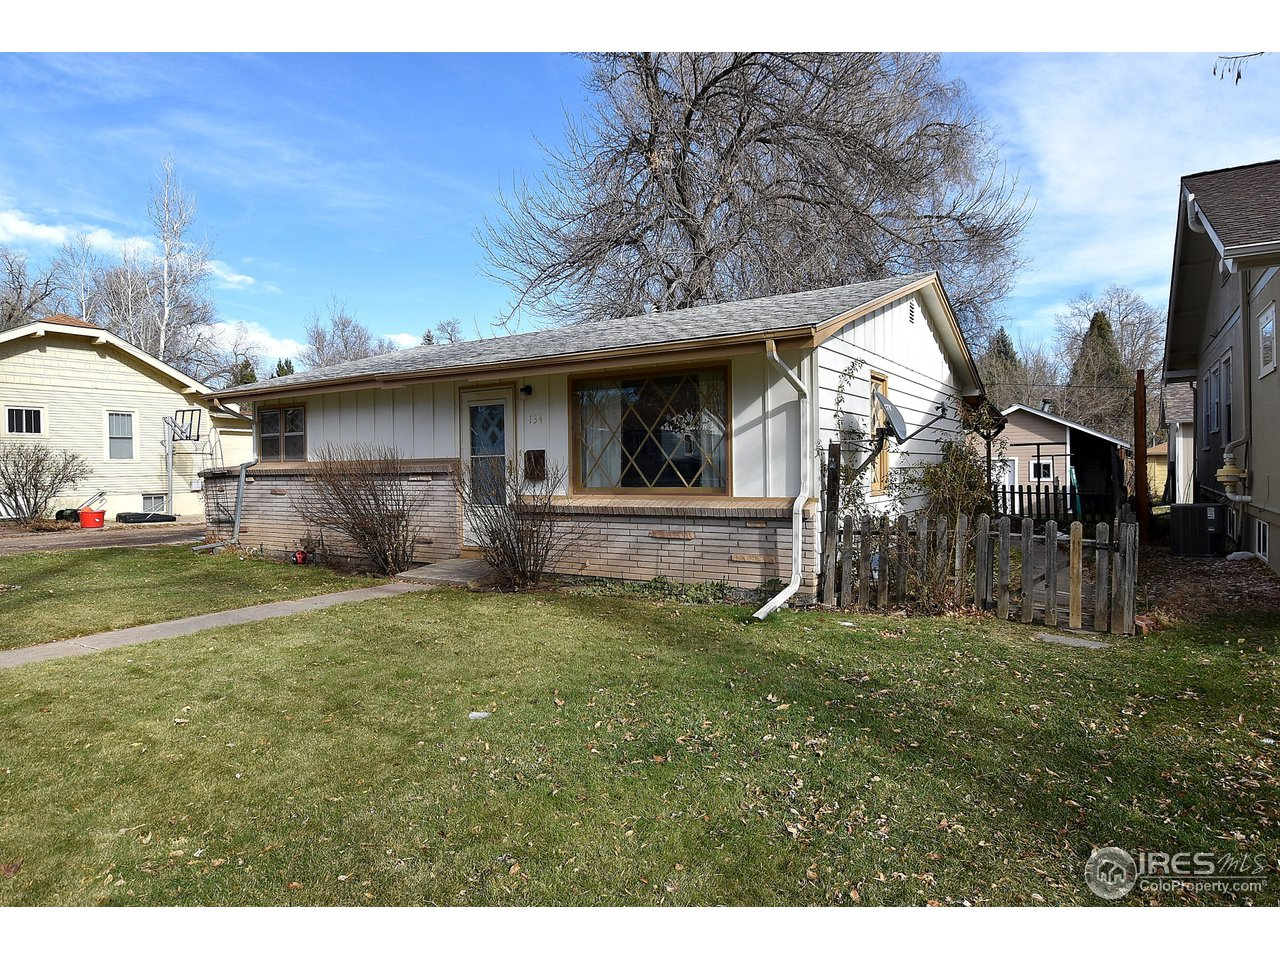 134 Lyons St, Fort Collins CO 80521